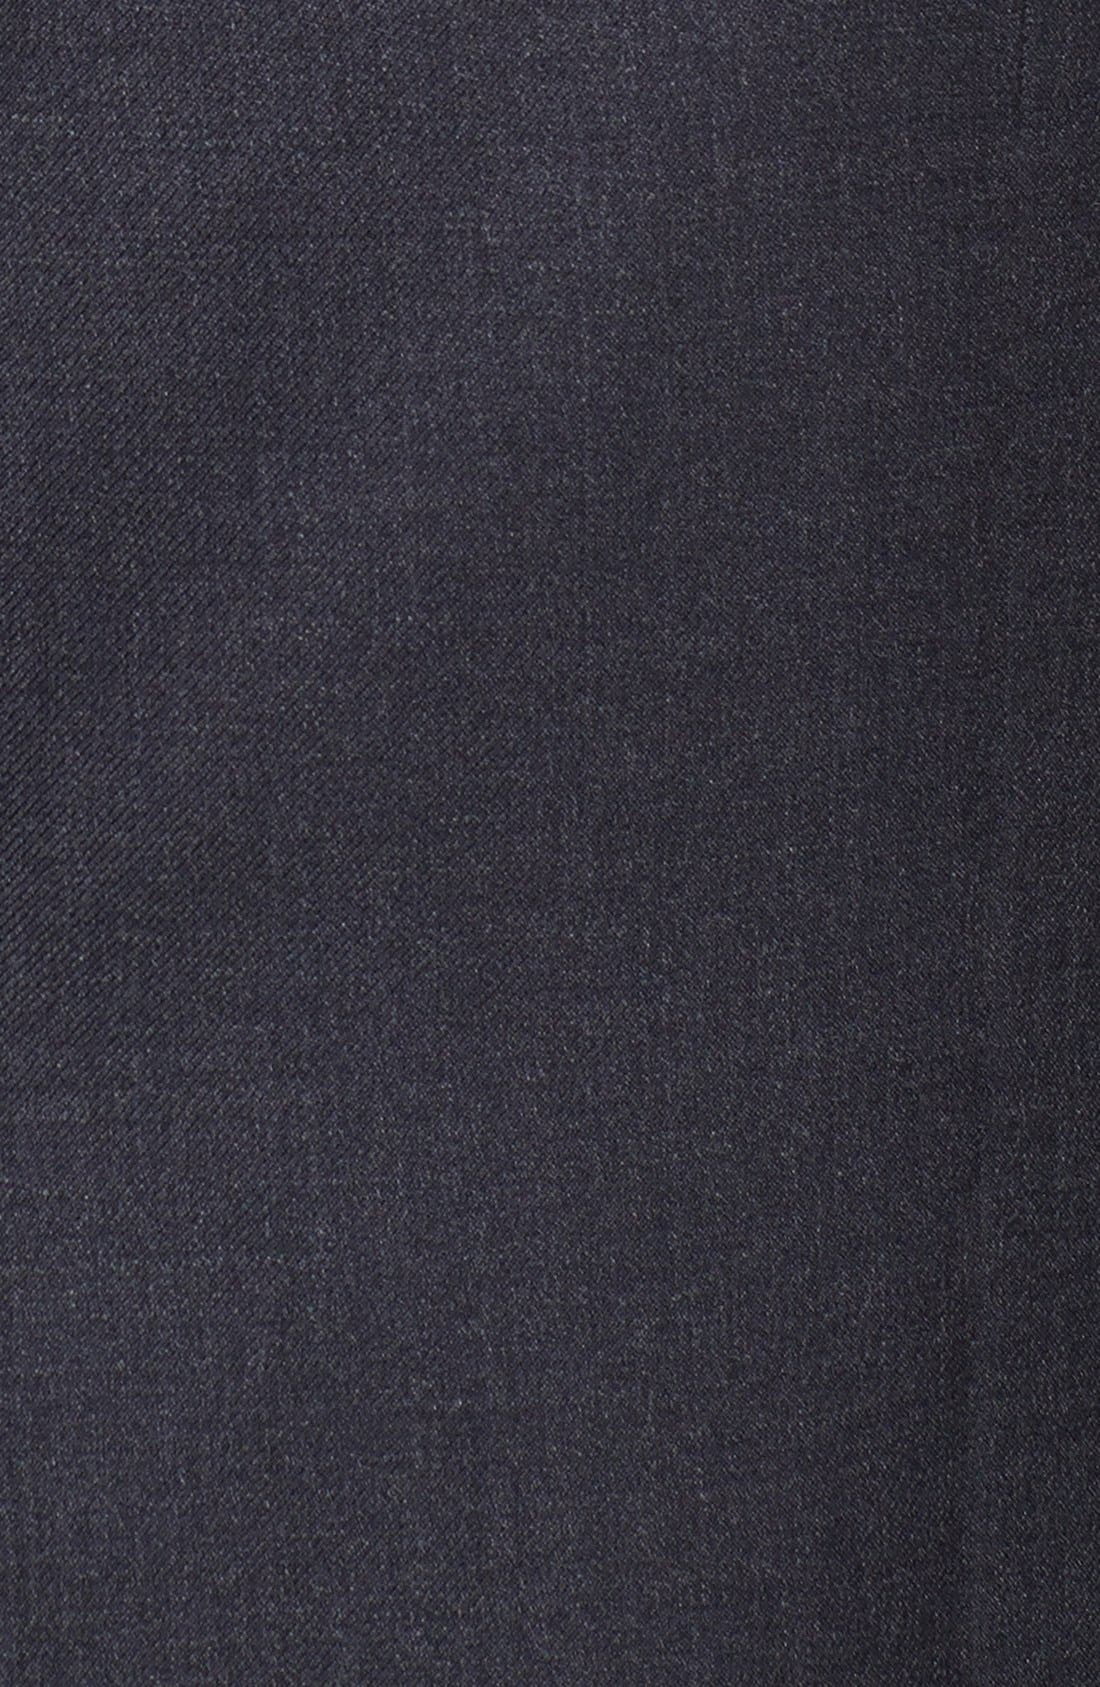 HART SCHAFFNER MARX, New York Classic Fit Solid Stretch Wool Suit, Alternate thumbnail 6, color, GREY